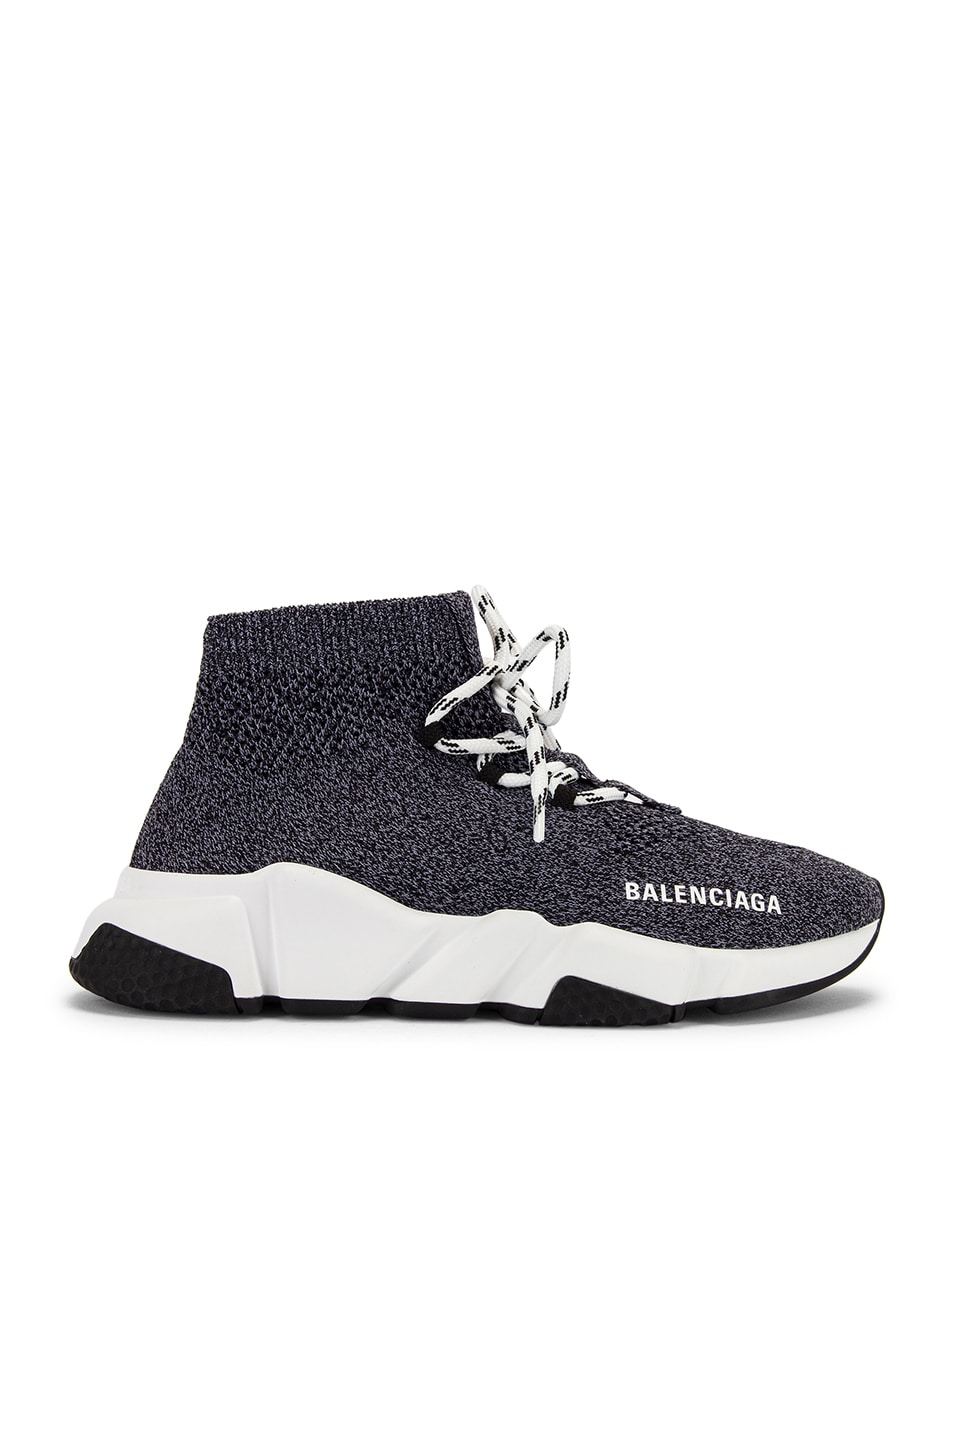 Image 1 of Balenciaga Speed Lace Up Knit Sneakers in Black & White